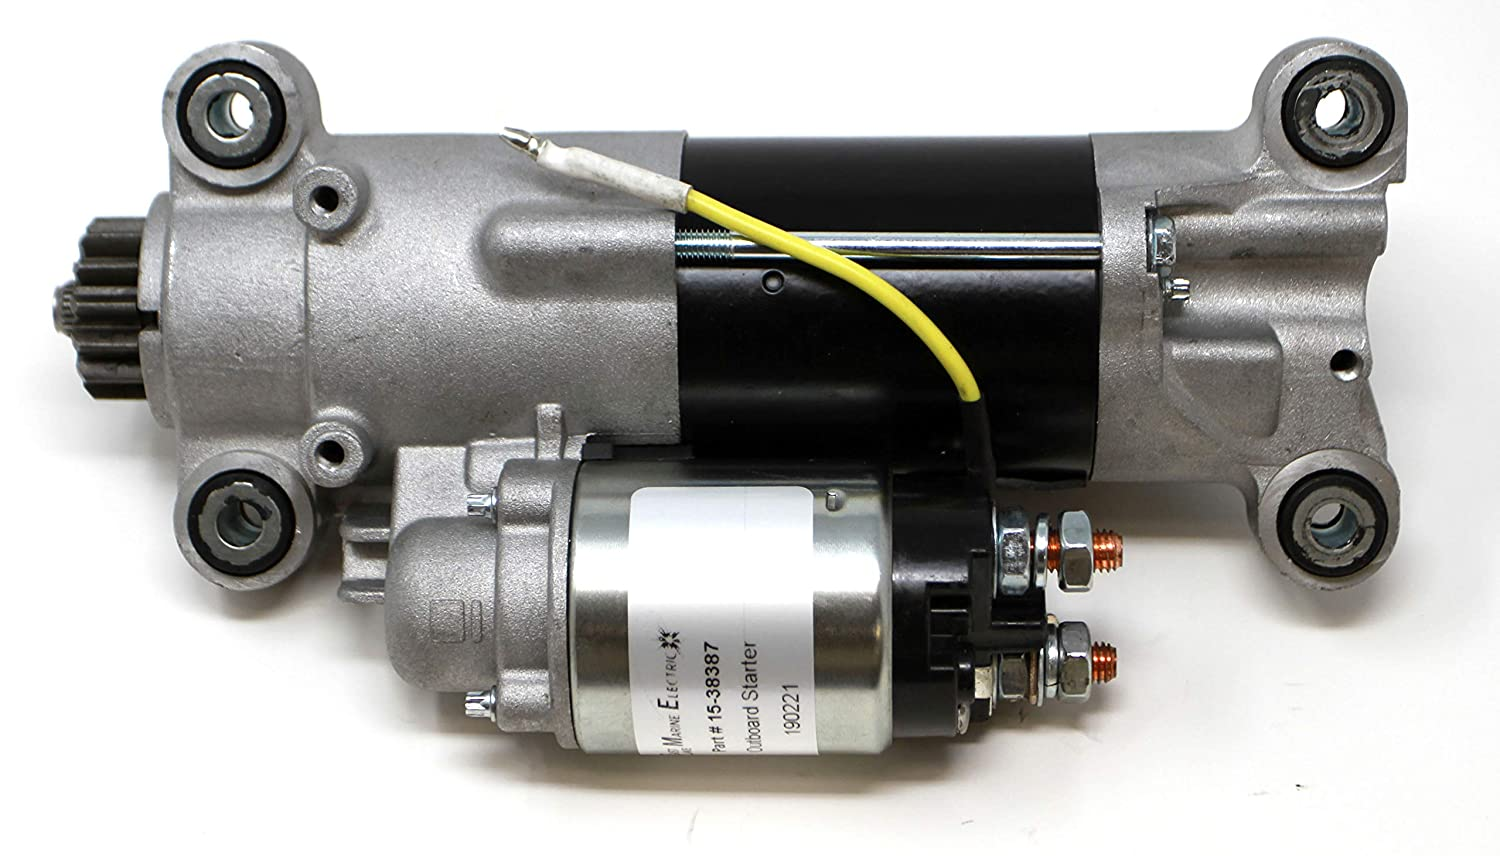 Mercury Force Chrysler Ignition Switch Kit This Is A New Mercury